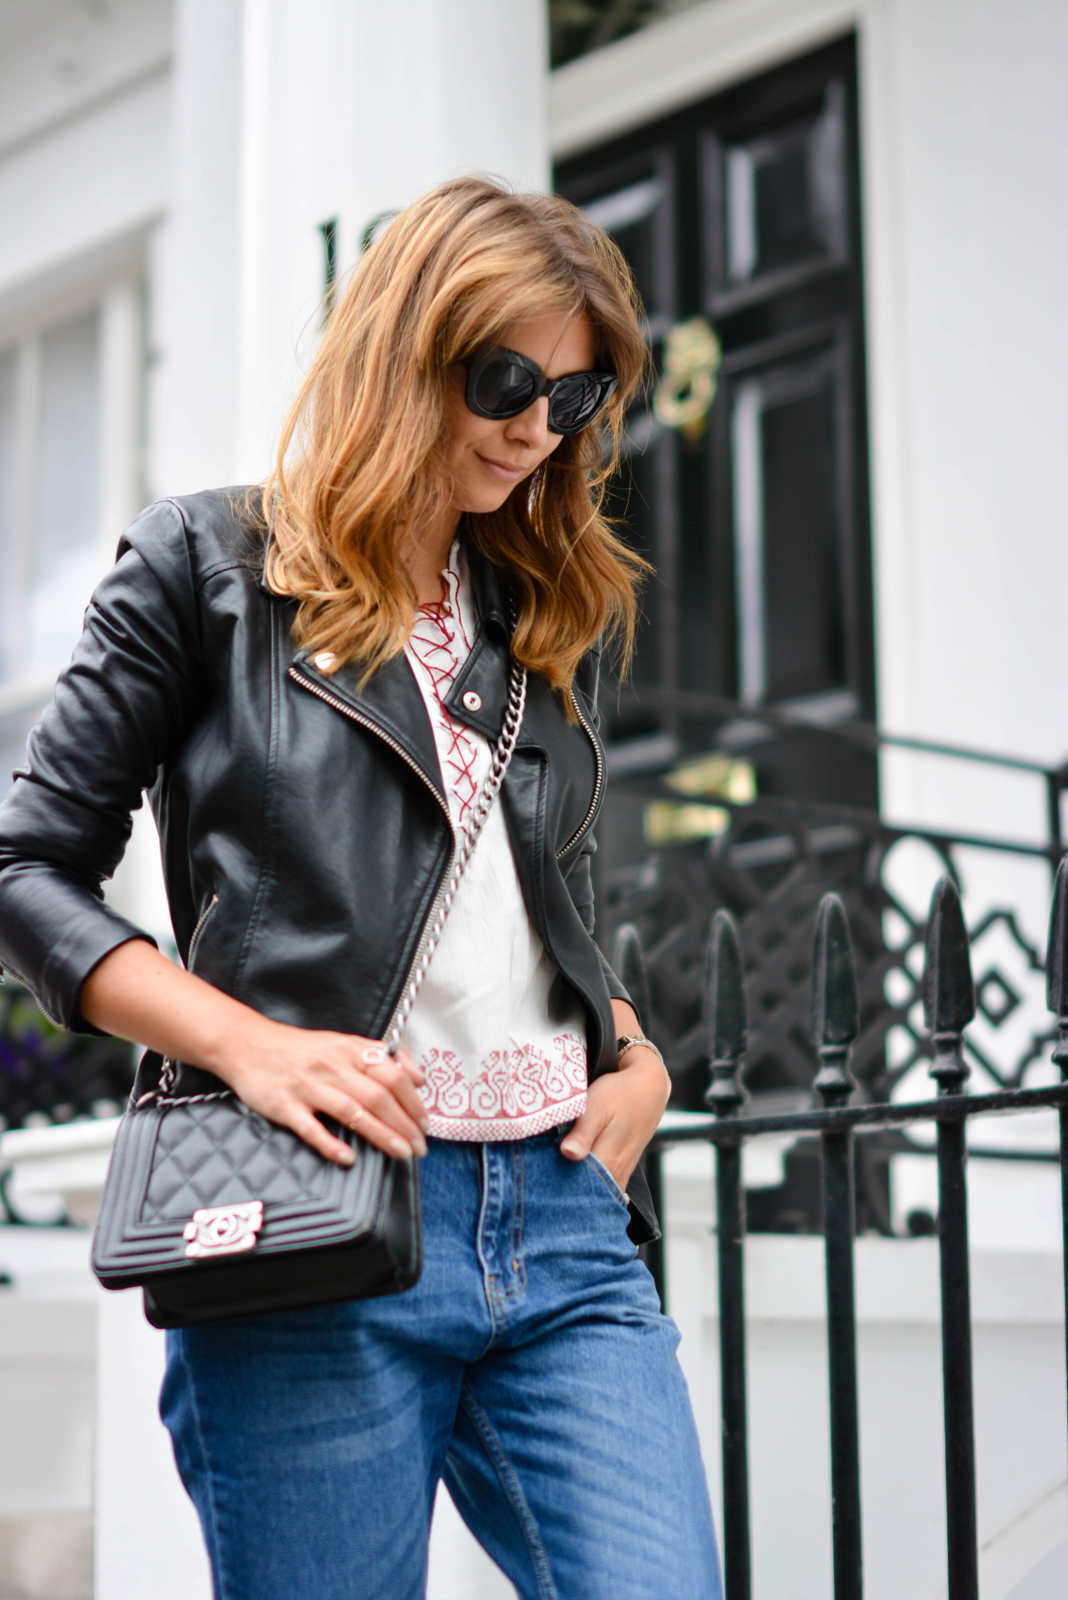 EJSTYLE - Emma Hill wears ripped boyfriend jeans, leather jacket, embroidered lace up top, chanel boy bag, black cats eye sunglasses, OOTD, festival style